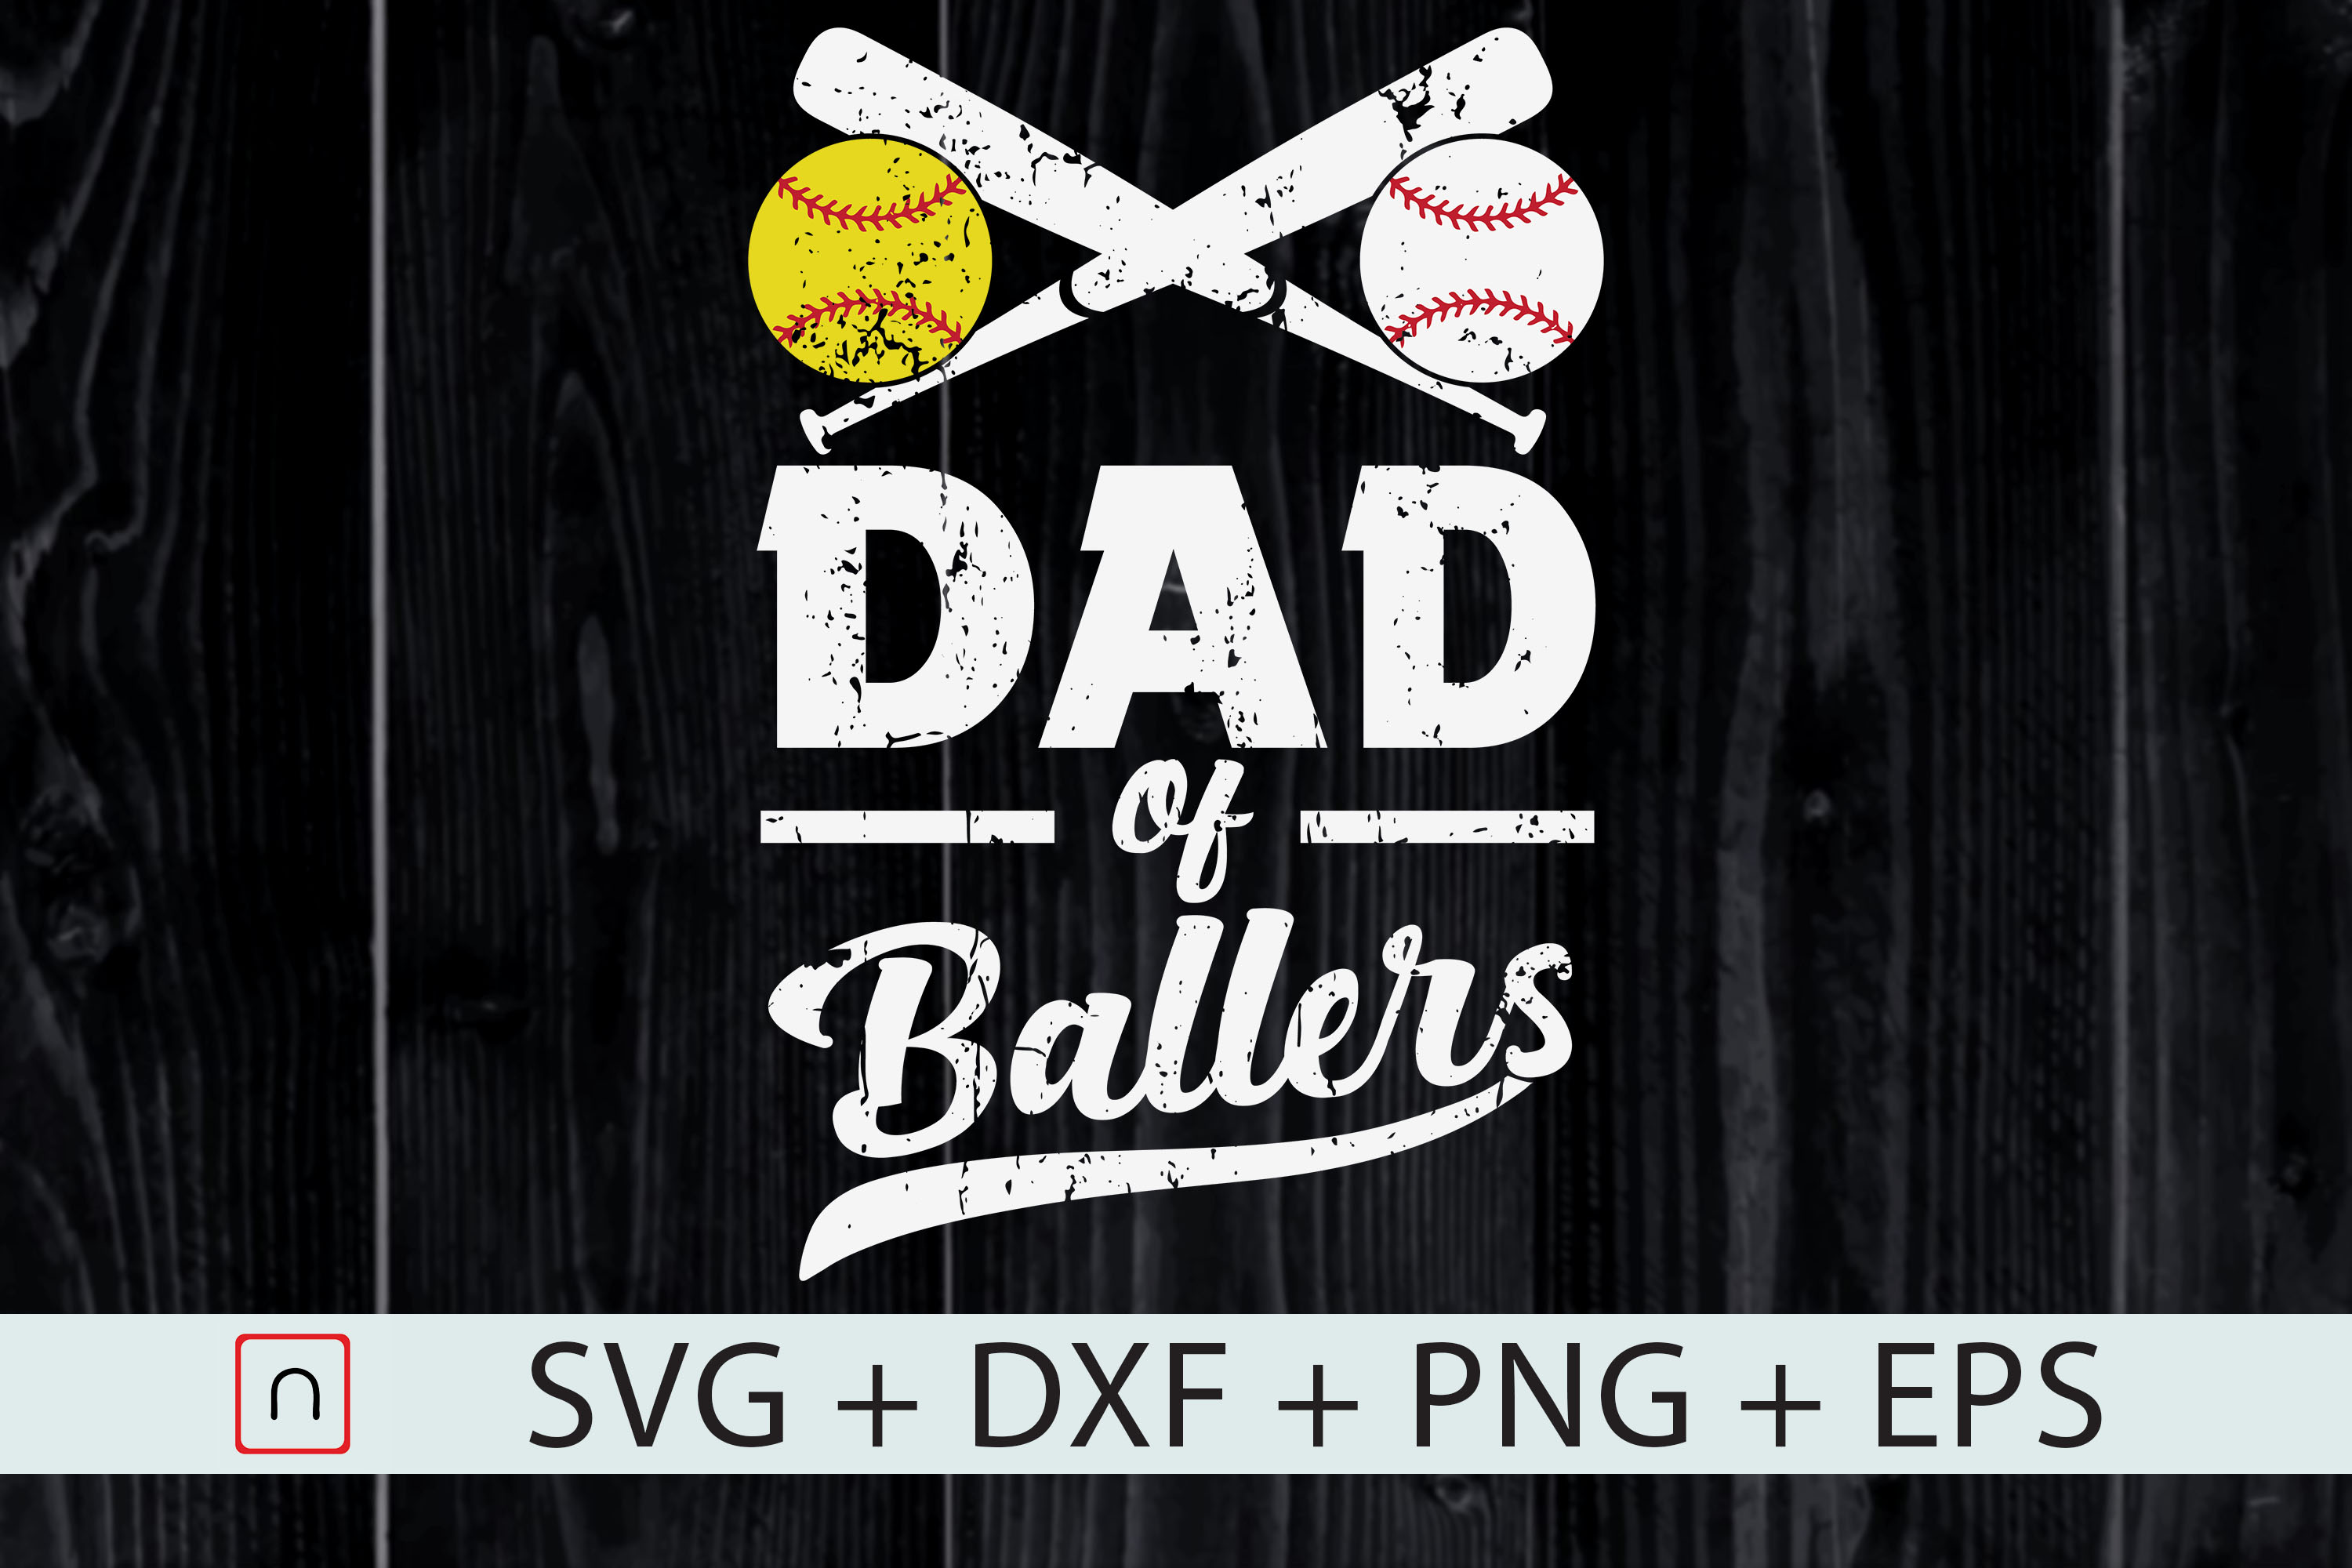 Download Free Dad Of Ballers Graphic By Novalia Creative Fabrica for Cricut Explore, Silhouette and other cutting machines.